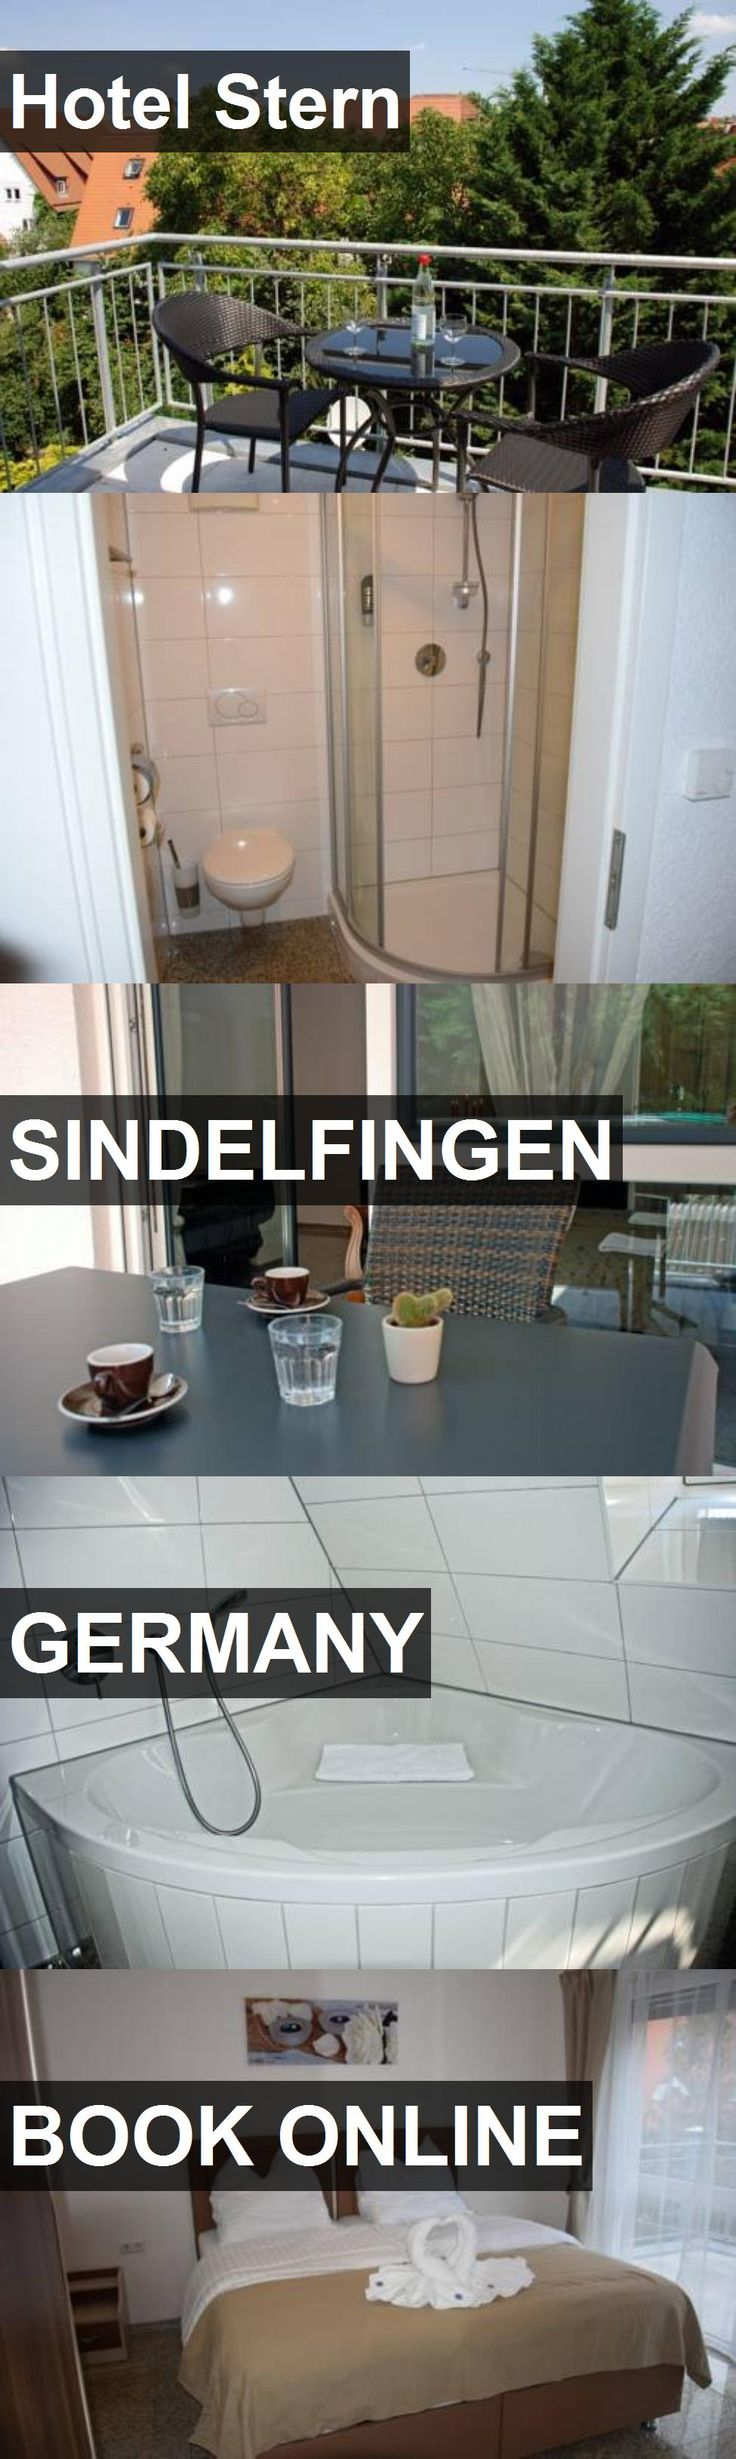 Hotel Hotel Stern in Sindelfingen, Germany. For more information, photos, reviews and best prices please follow the link. #Germany #Sindelfingen #HotelStern #hotel #travel #vacation